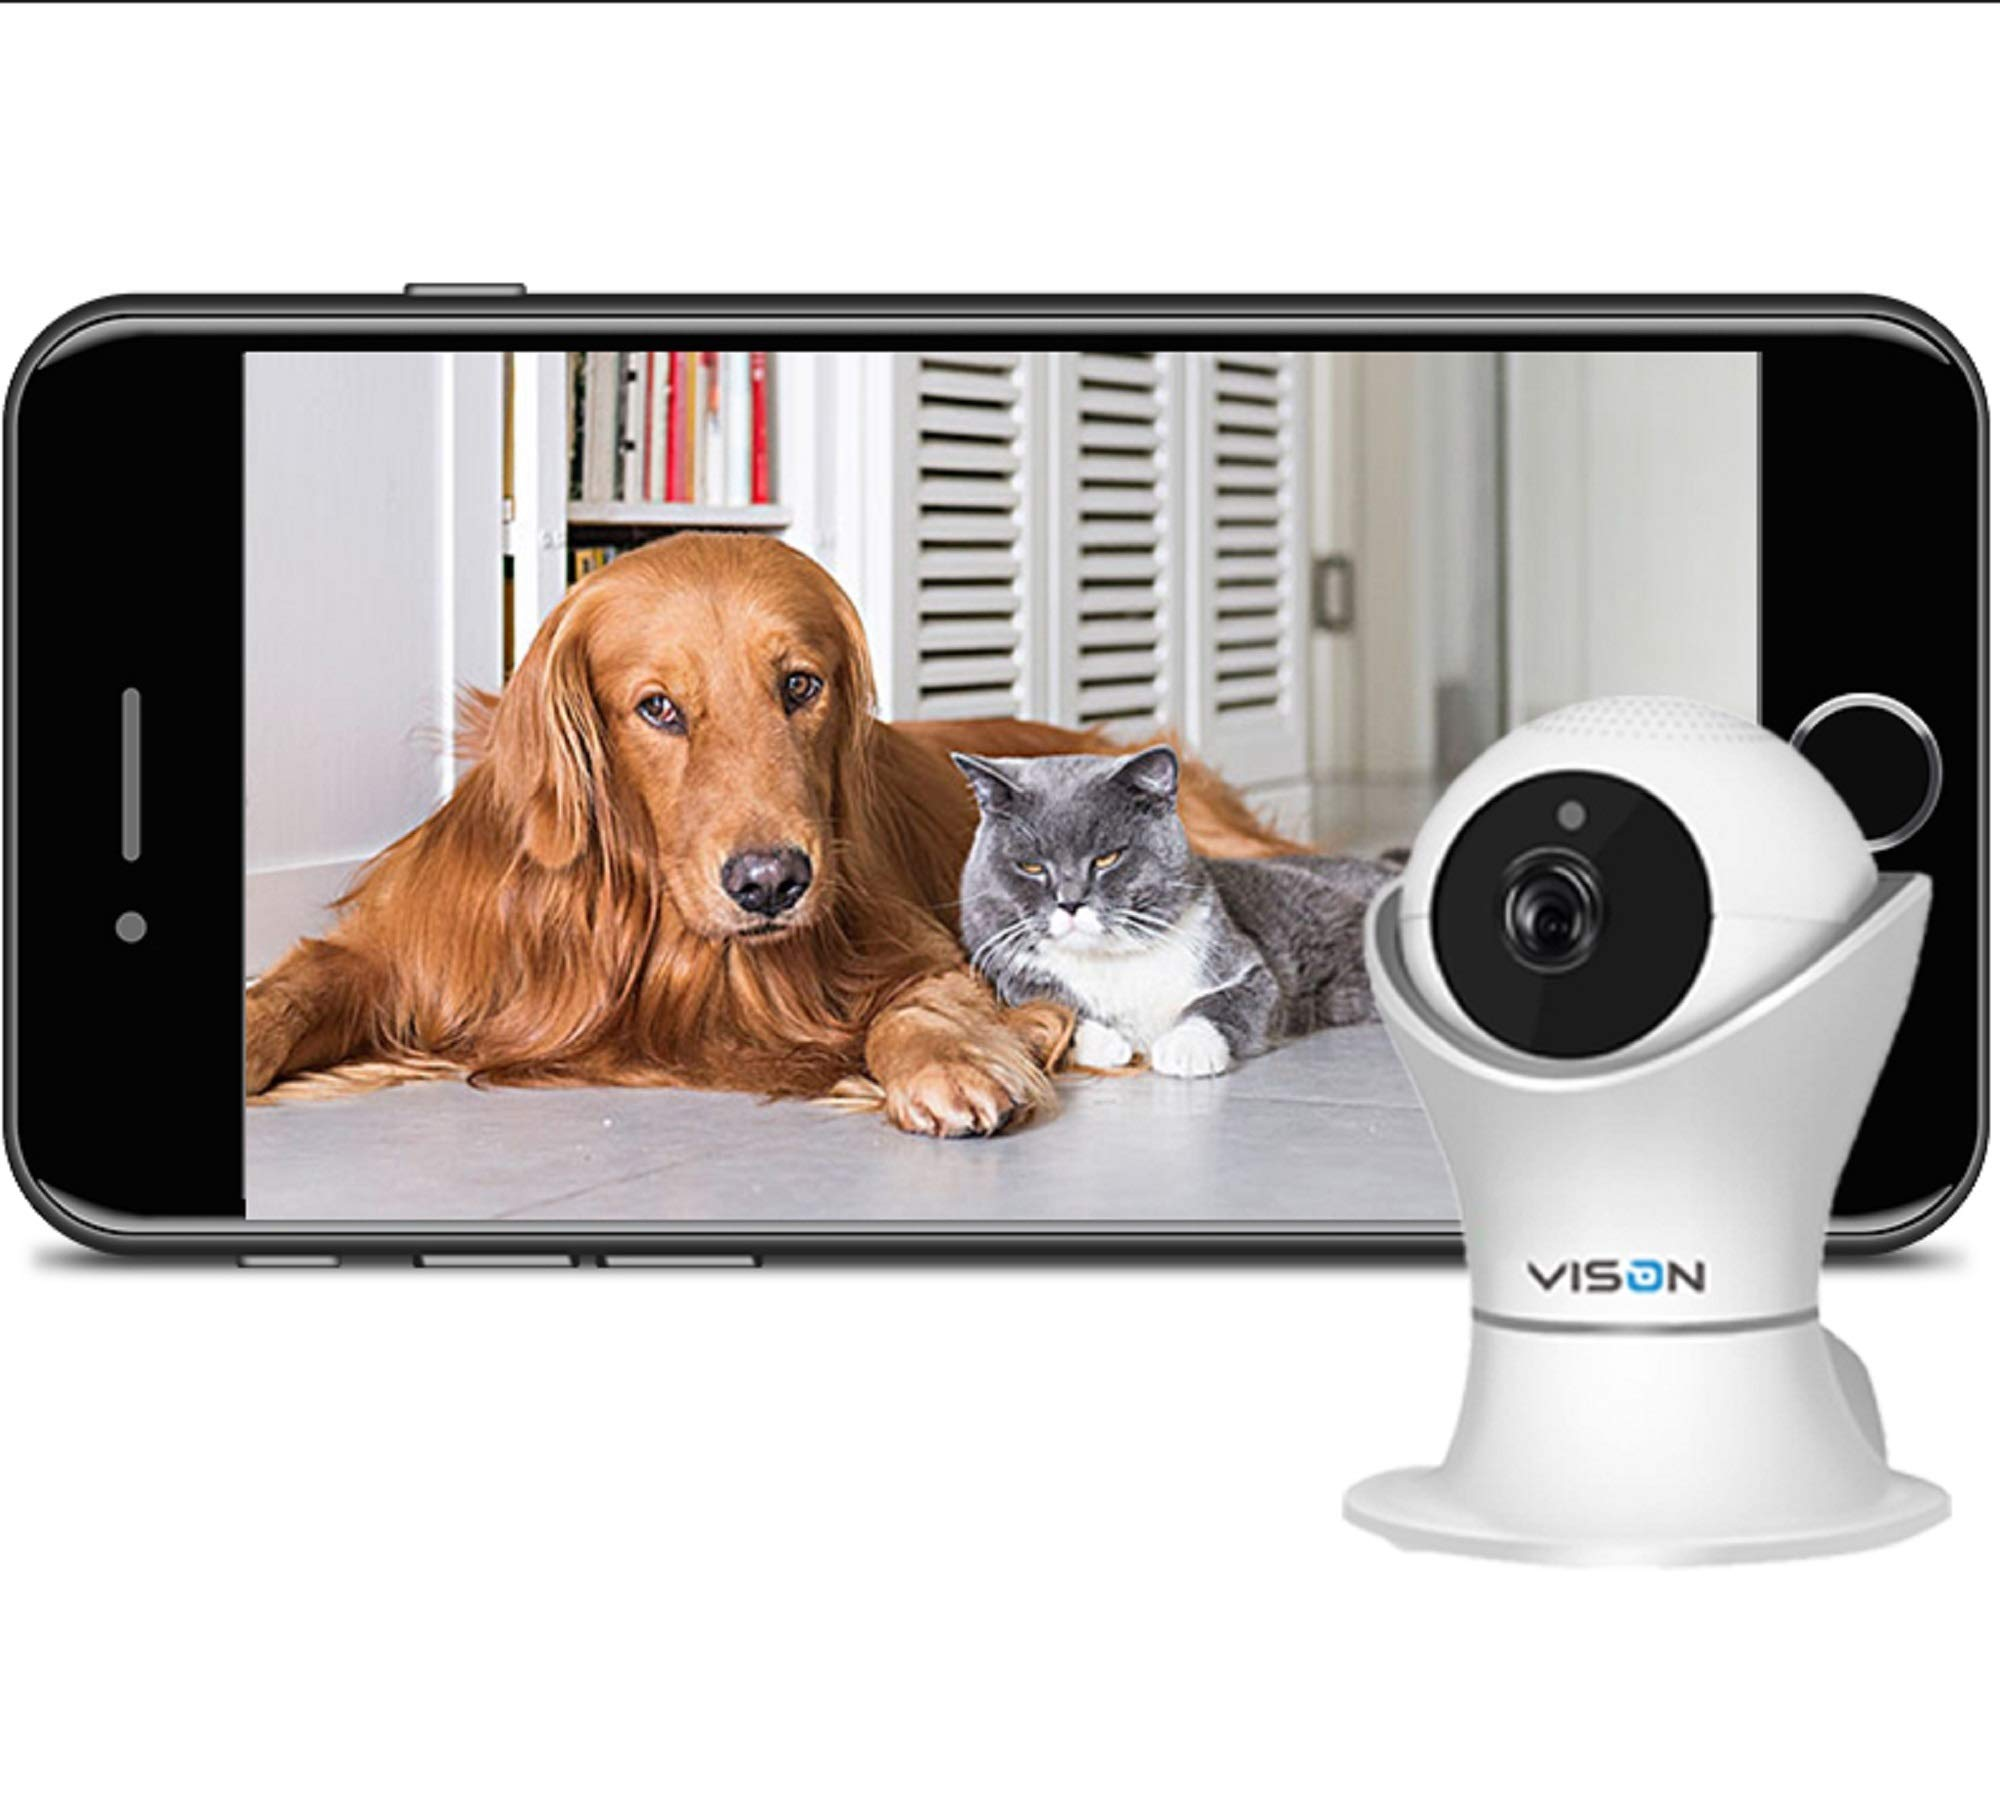 FullHD 1080p WiFi Home Security Camera Pet Camera Wireless IP Indoor Surveillance System Pan/Tilt/Zoom with 2 Way Audio Night Vision Motion Detection Remote Baby Monitor iOS/Android by VINSION